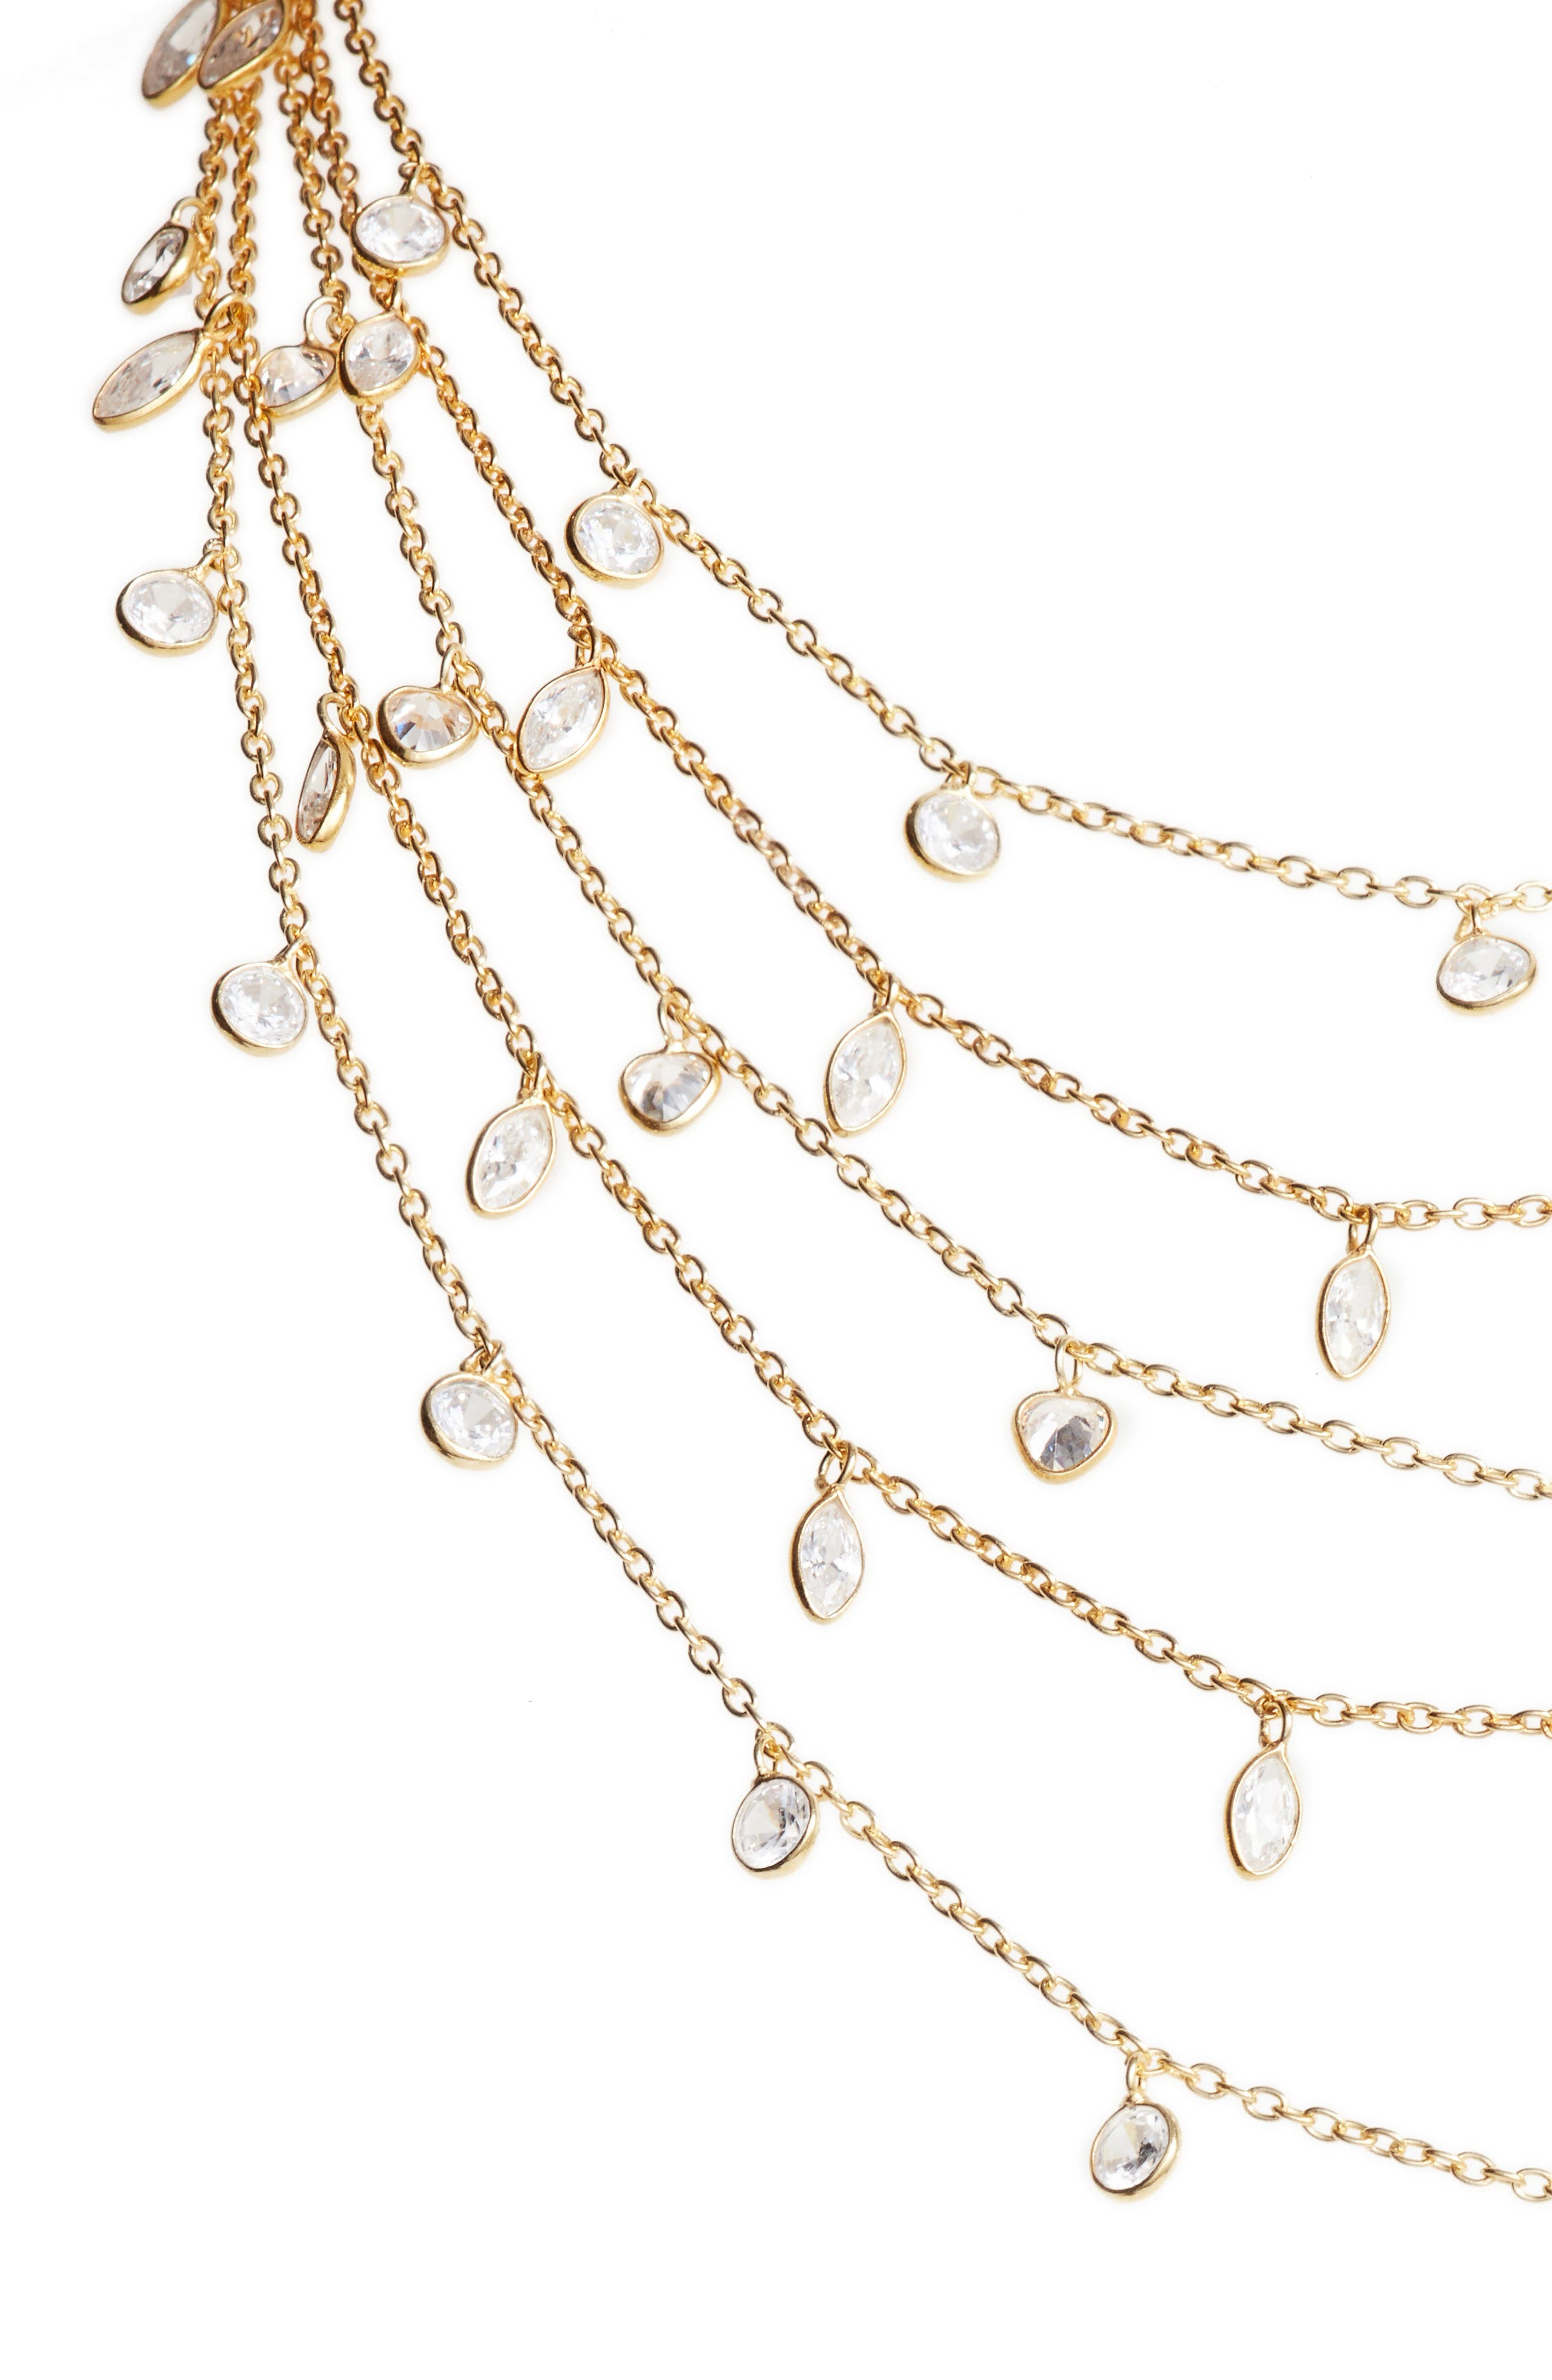 Multistrand Cubic Zirconia Necklace,                             Alternate thumbnail 2, color,                             Gold